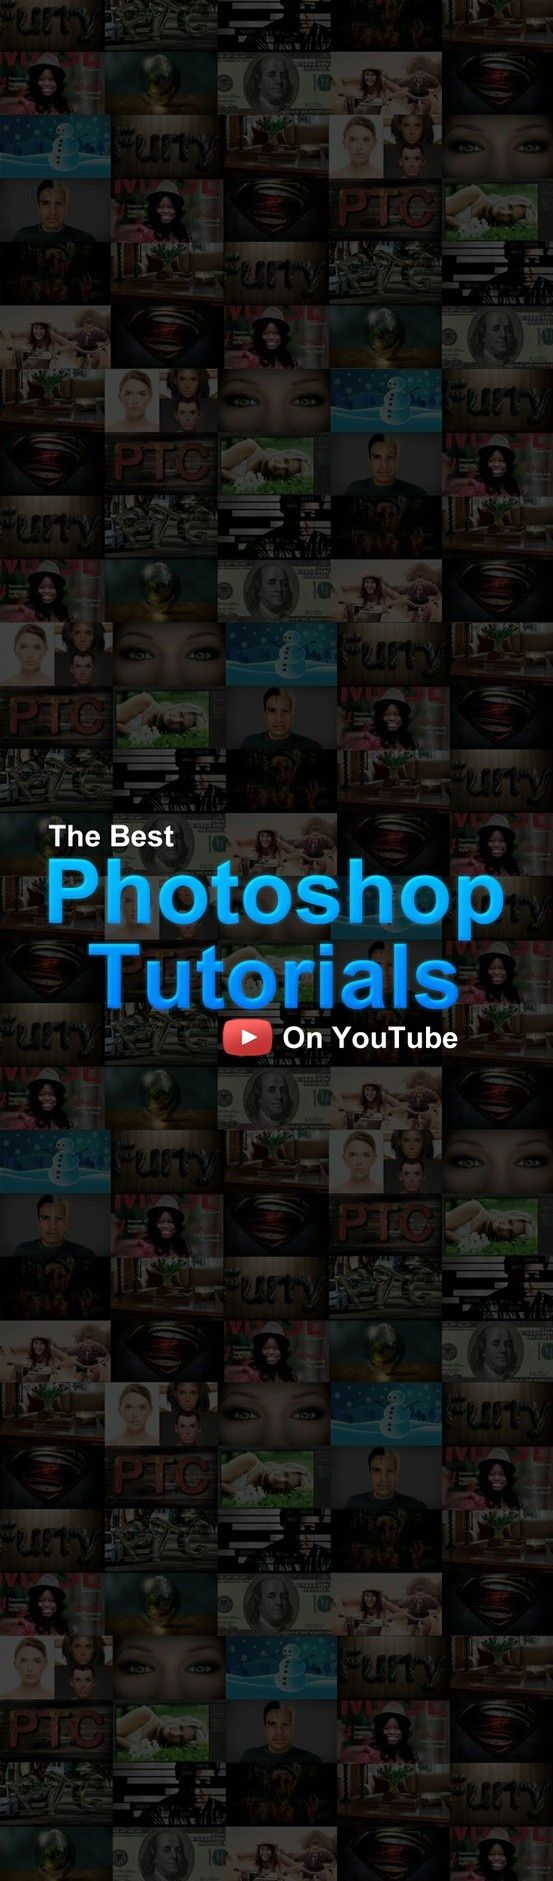 The Best Photoshop Video Tutorials on YouTube! Check It Out!